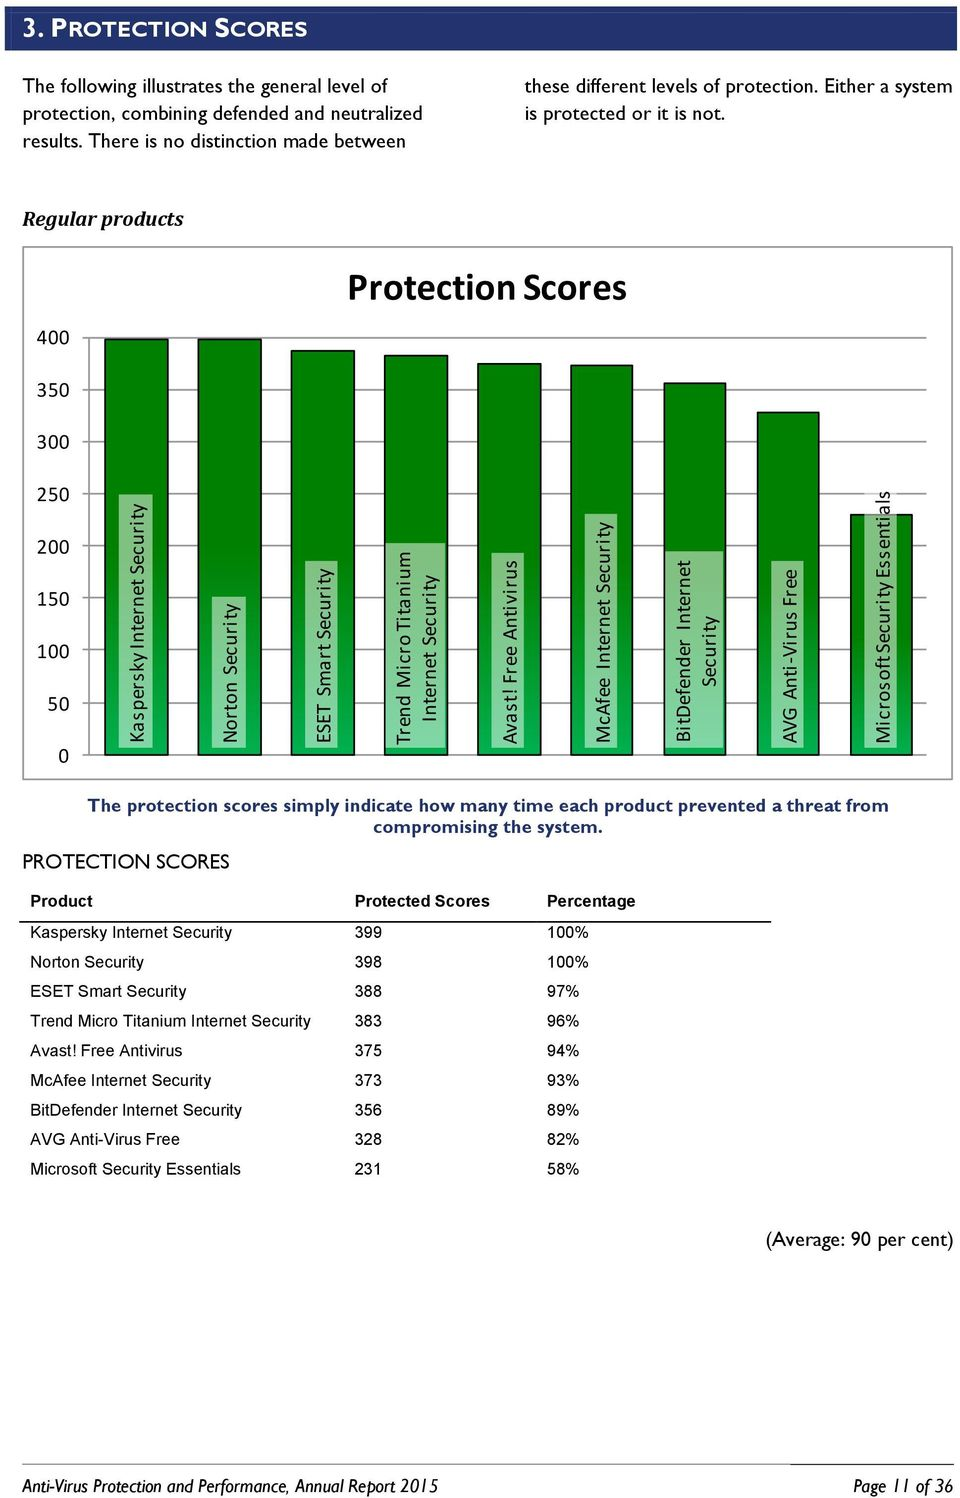 PROTECTION SCORES The following illustrates the general level of protection, combining defended and neutralized results. There is no distinction made between these different levels of protection.